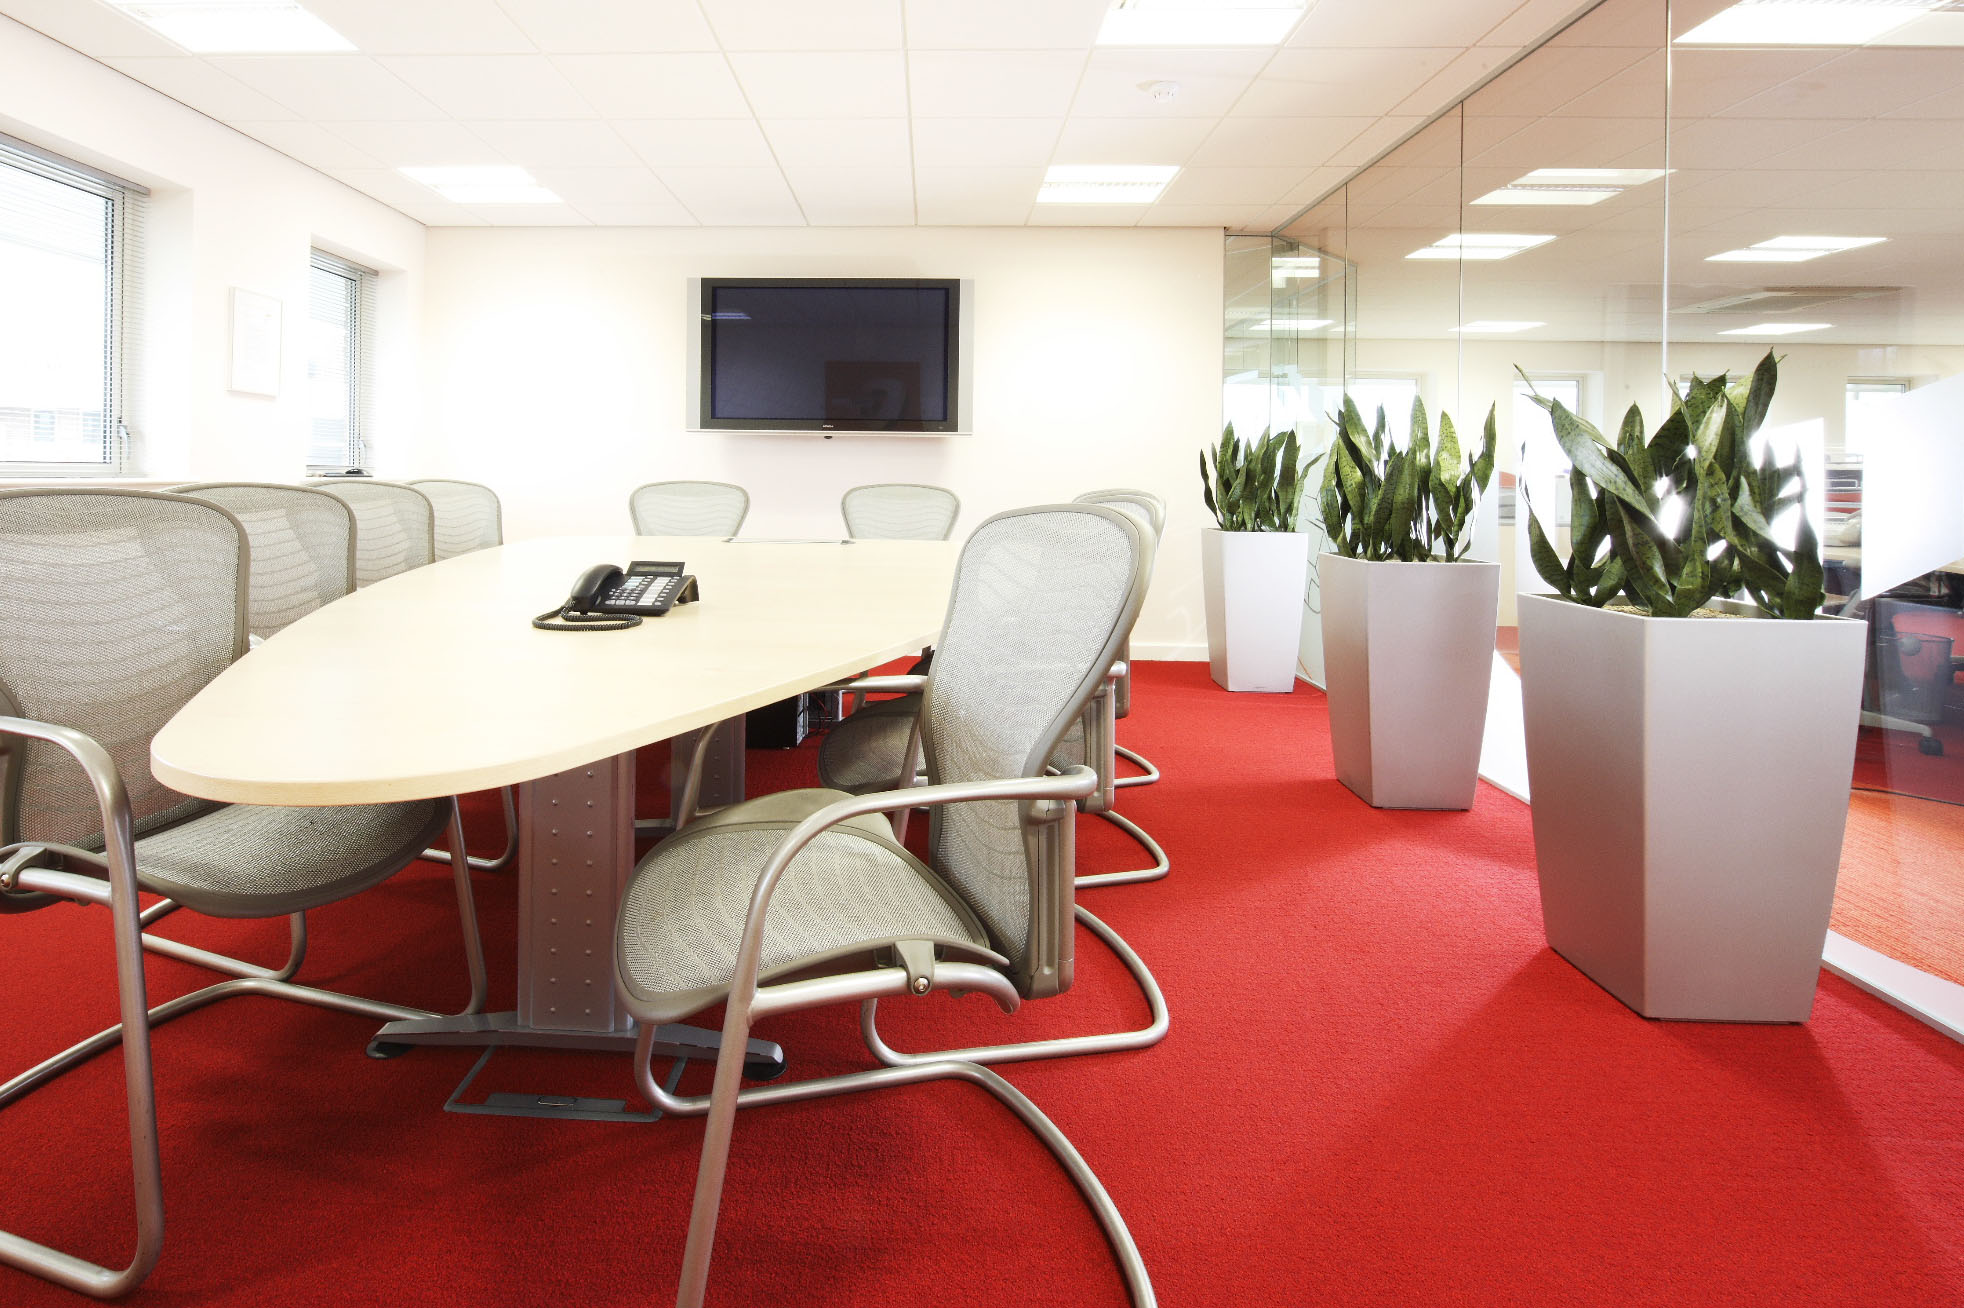 10 office fit out mistakes bolton manchester for Office design guidelines uk